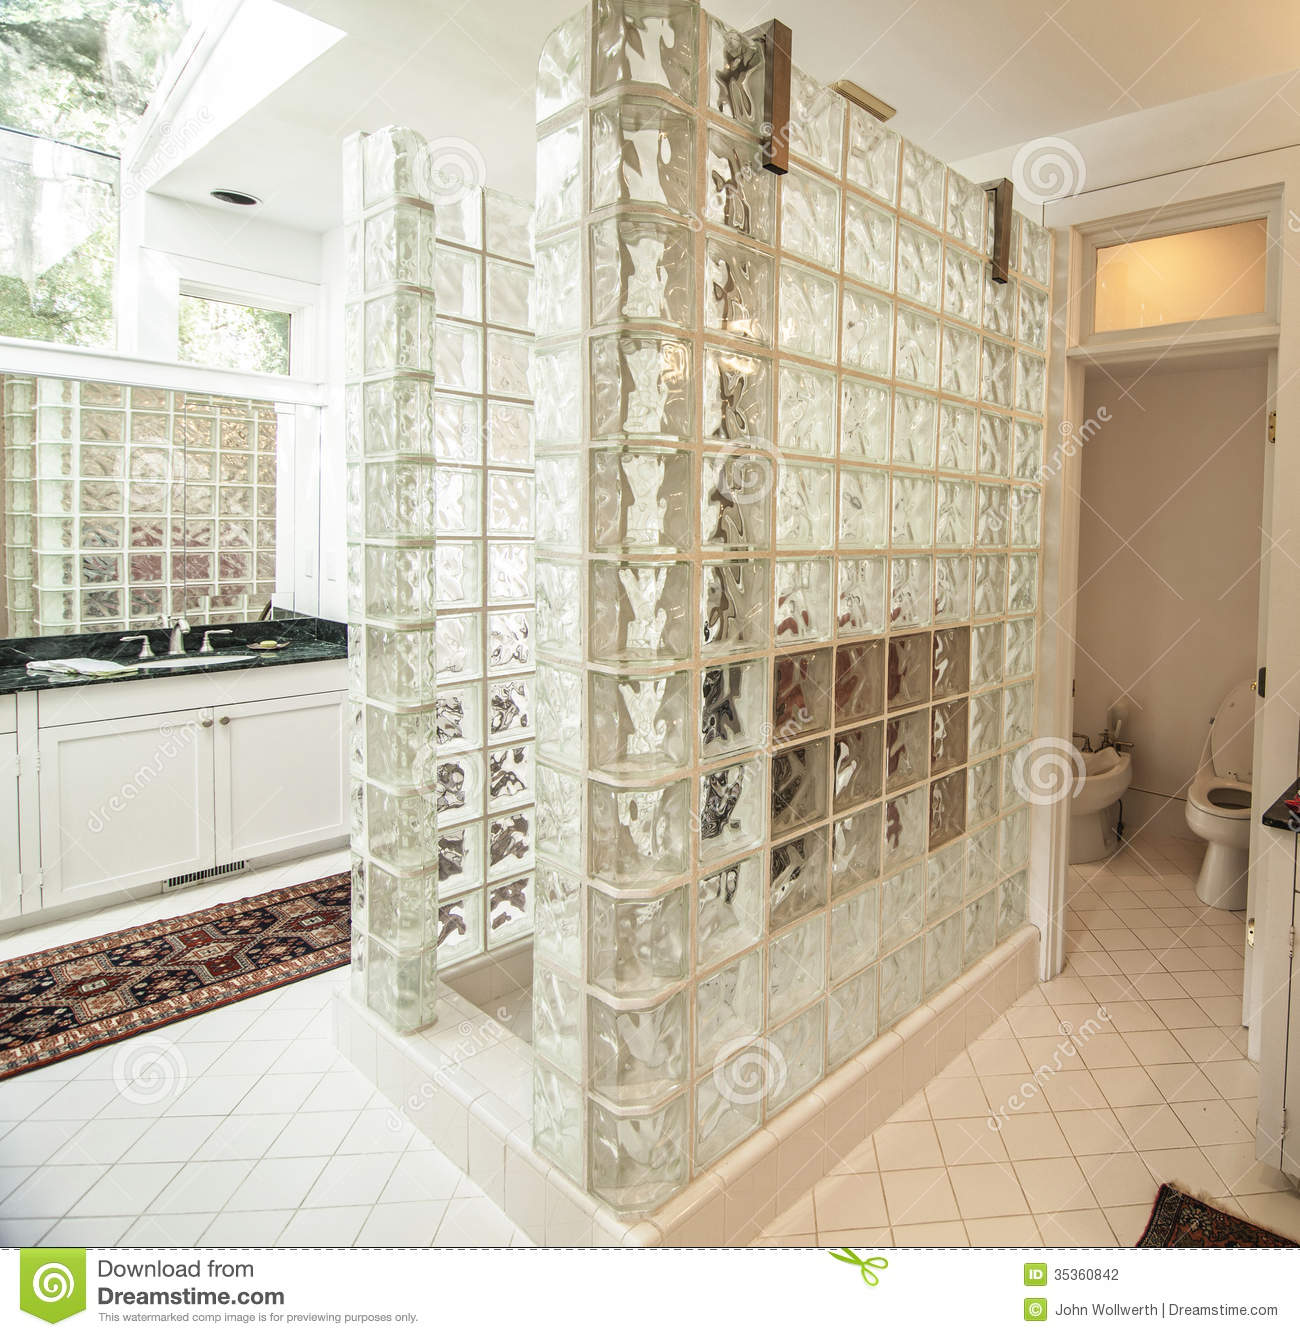 Glass Tiles In Bathroom: 20 Amazing Pictures Of Bathroom Makeovers With Glass Tile